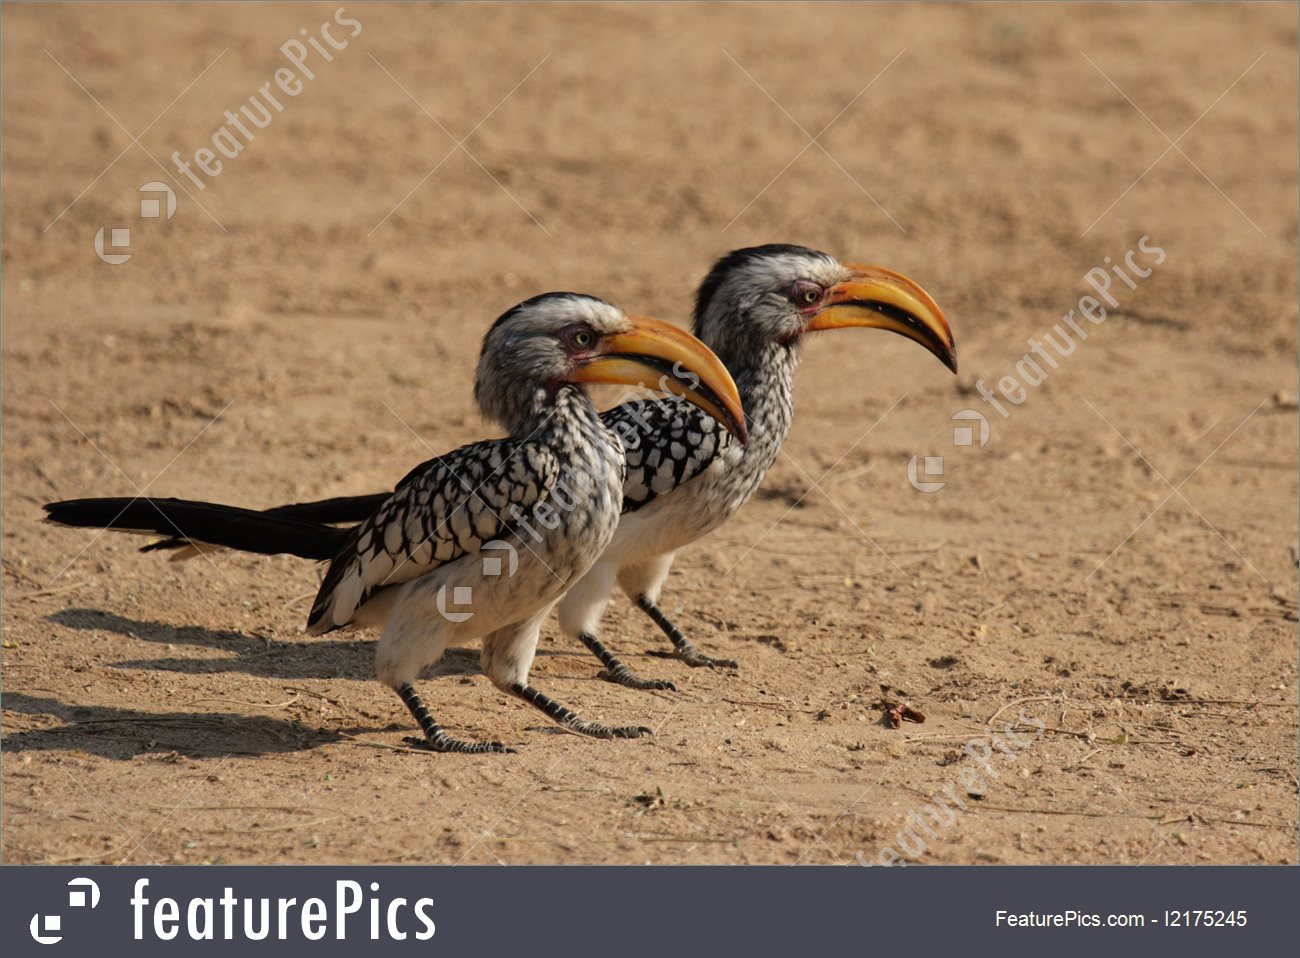 Southern Yellow-billed Hornbill clipart #9, Download drawings